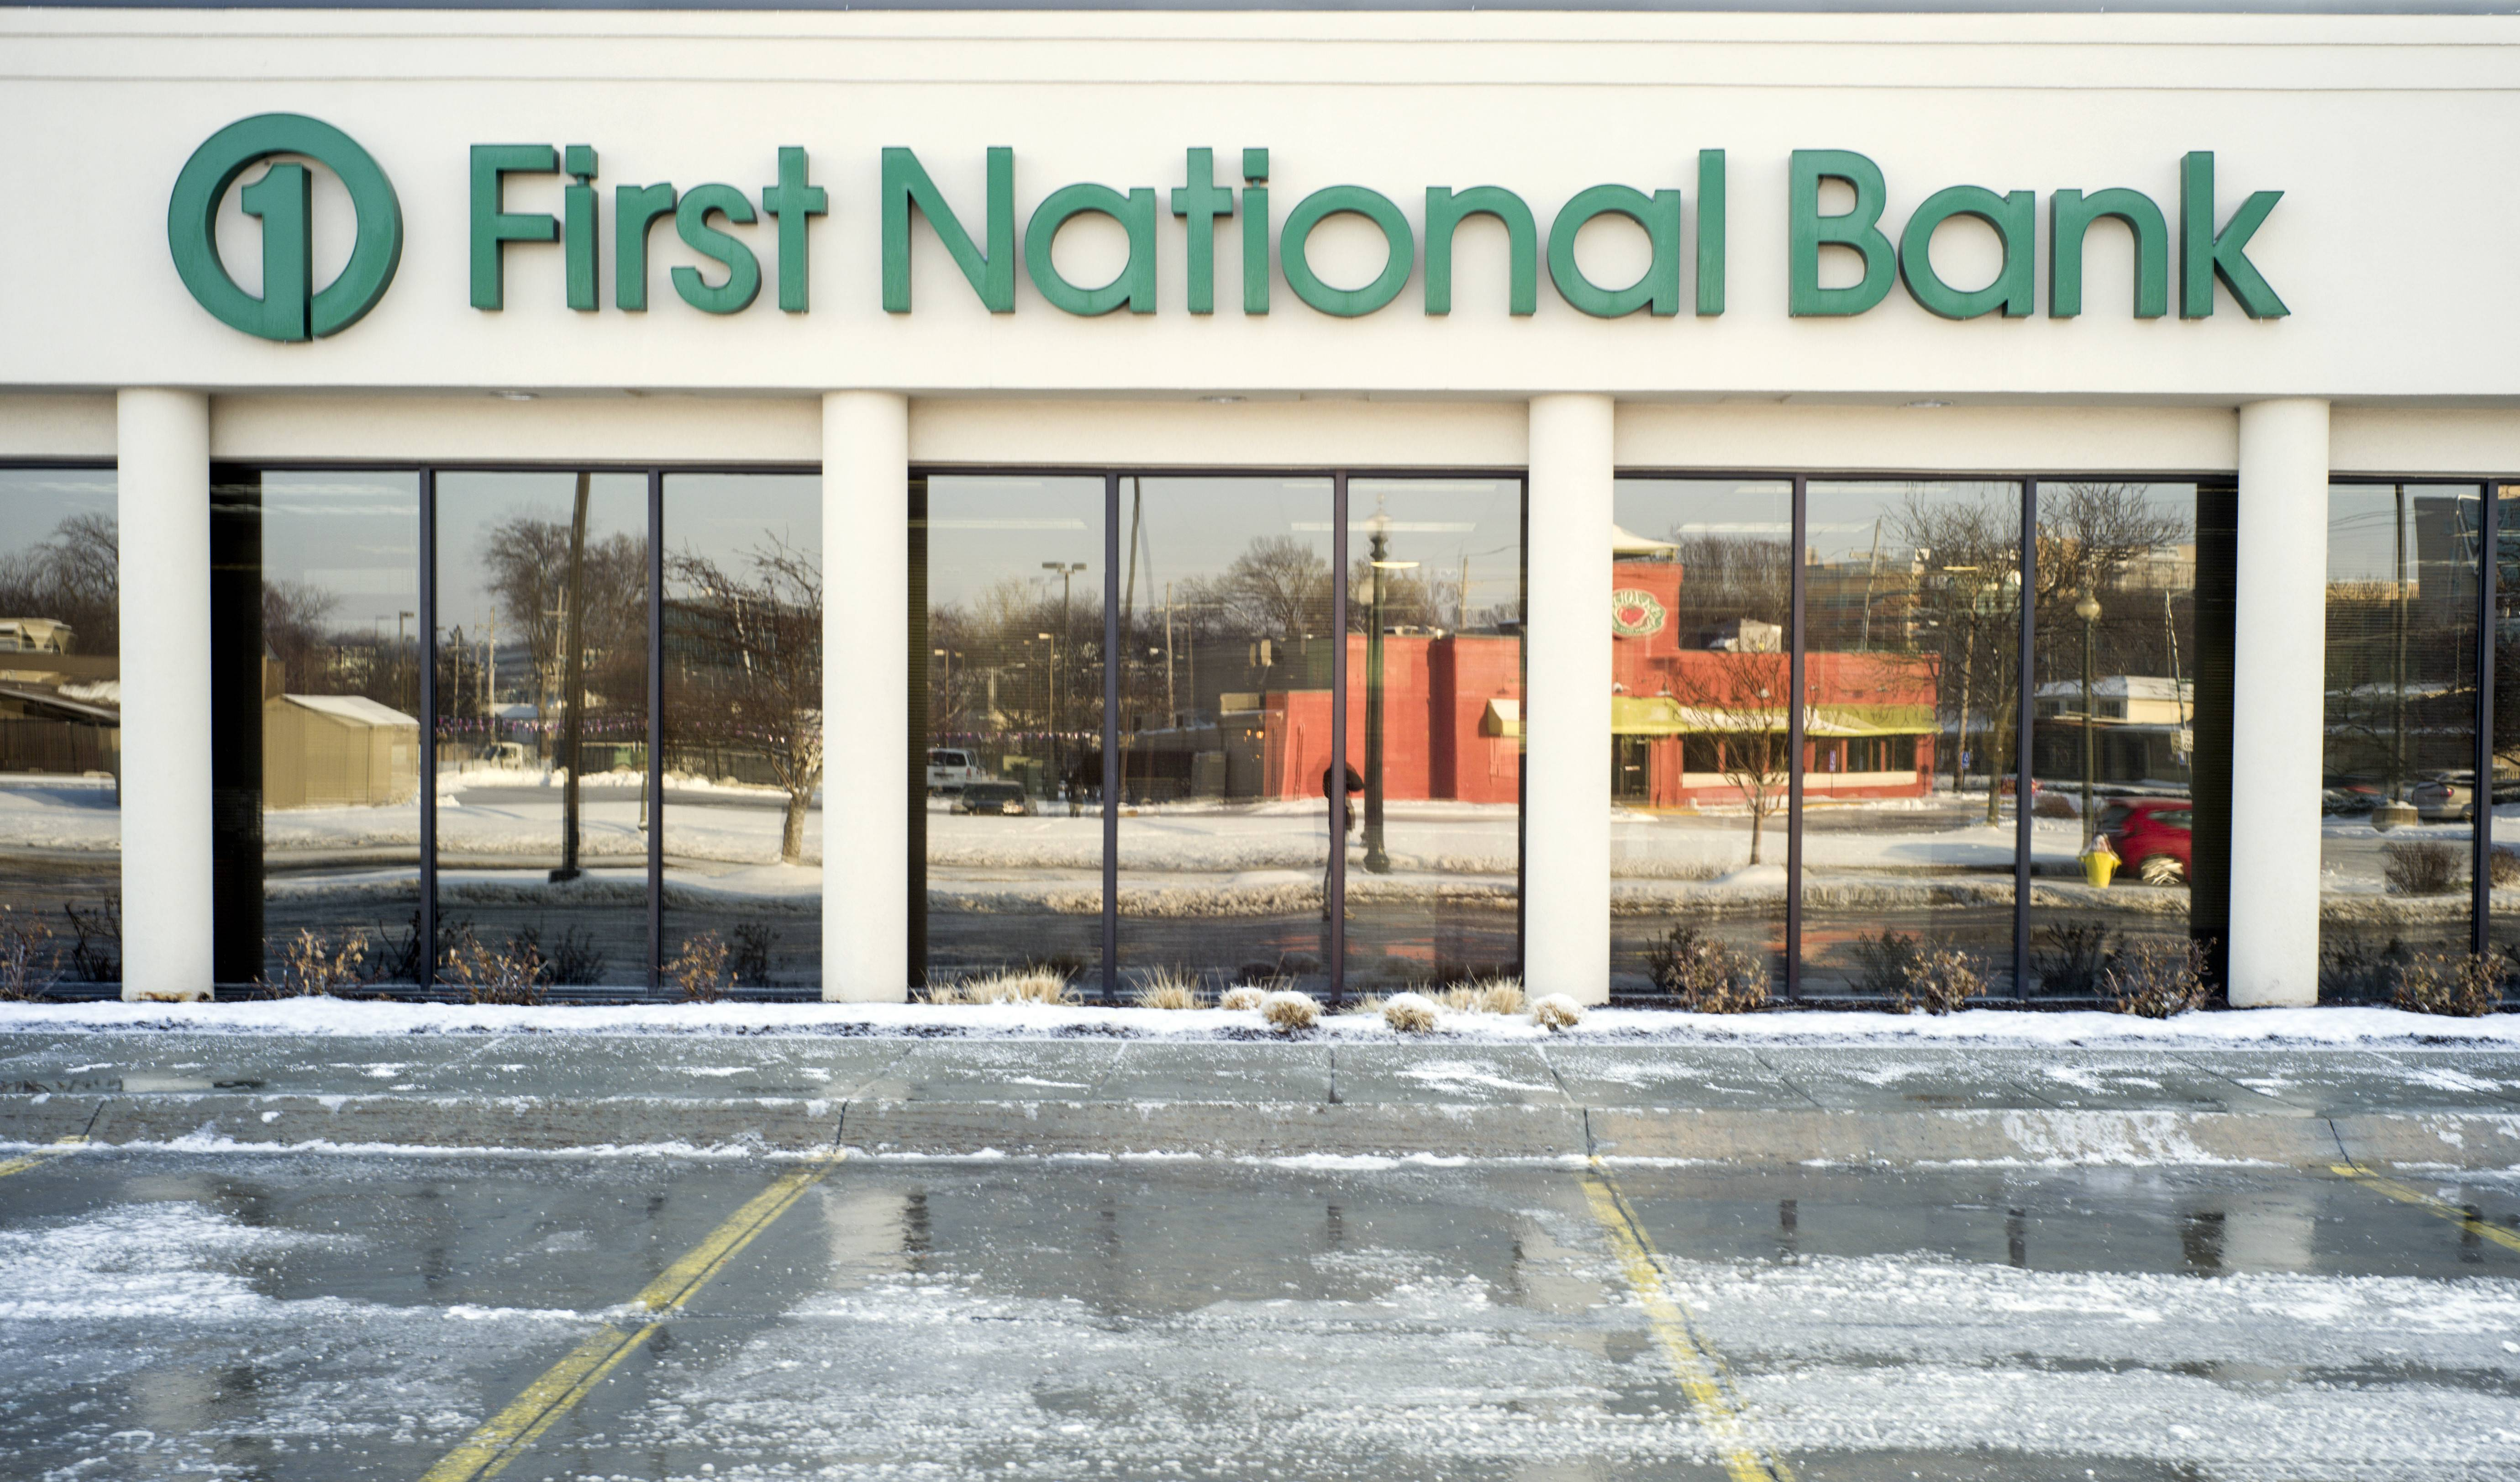 First National Bank (South Africa)